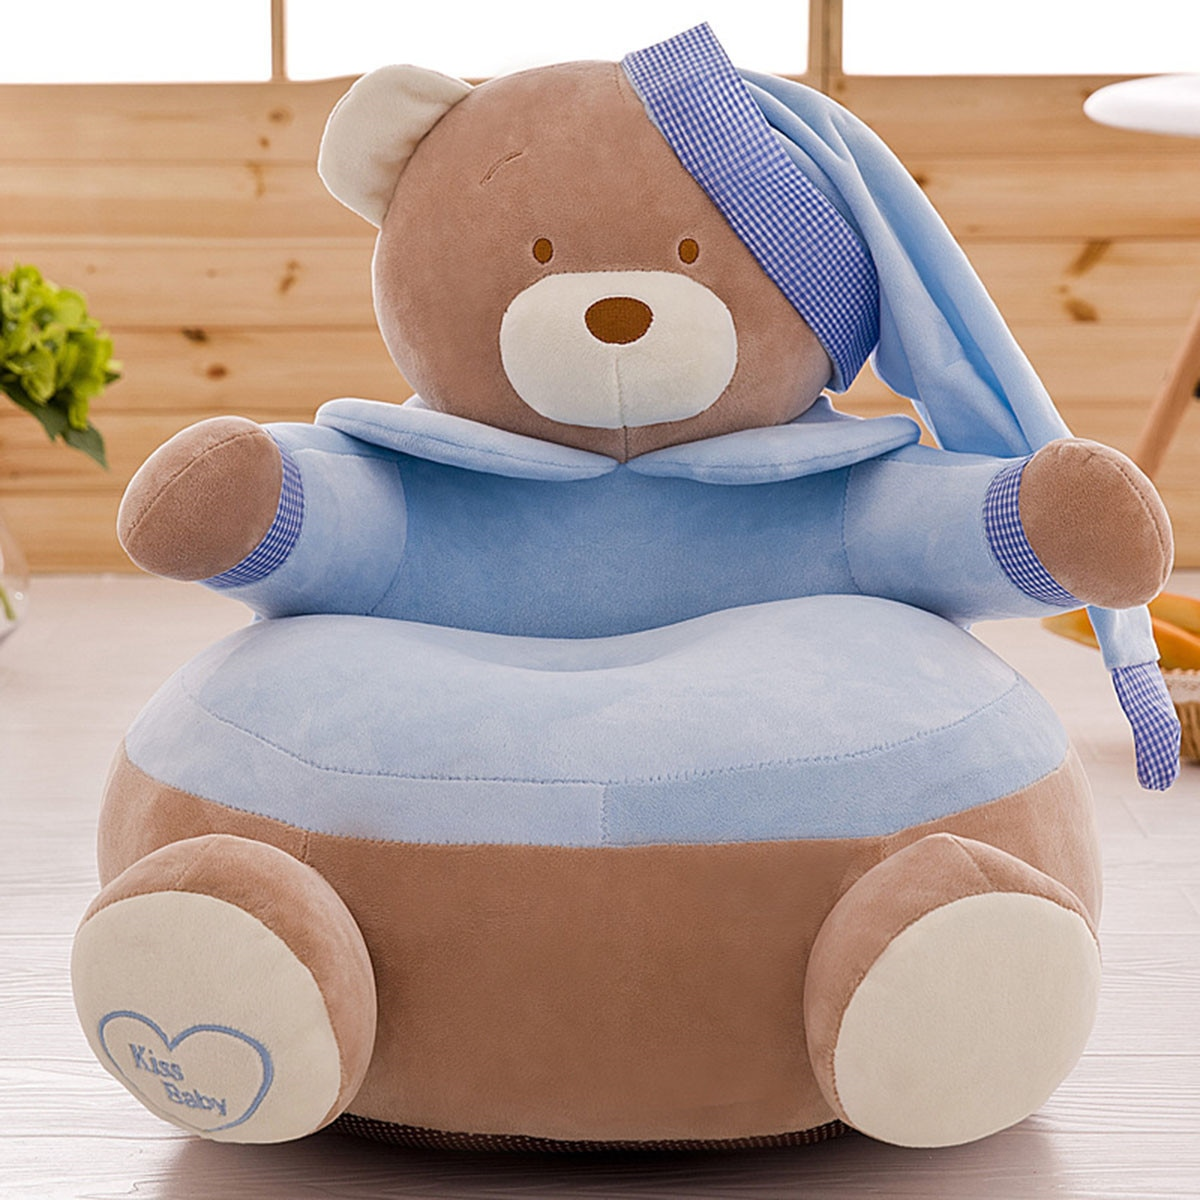 Infant Baby Seats Skin Soft Sofa Plush Kids Bean Bag Chair Comfort Cartoon Bear Chairs Washable Only Cover NO Filling